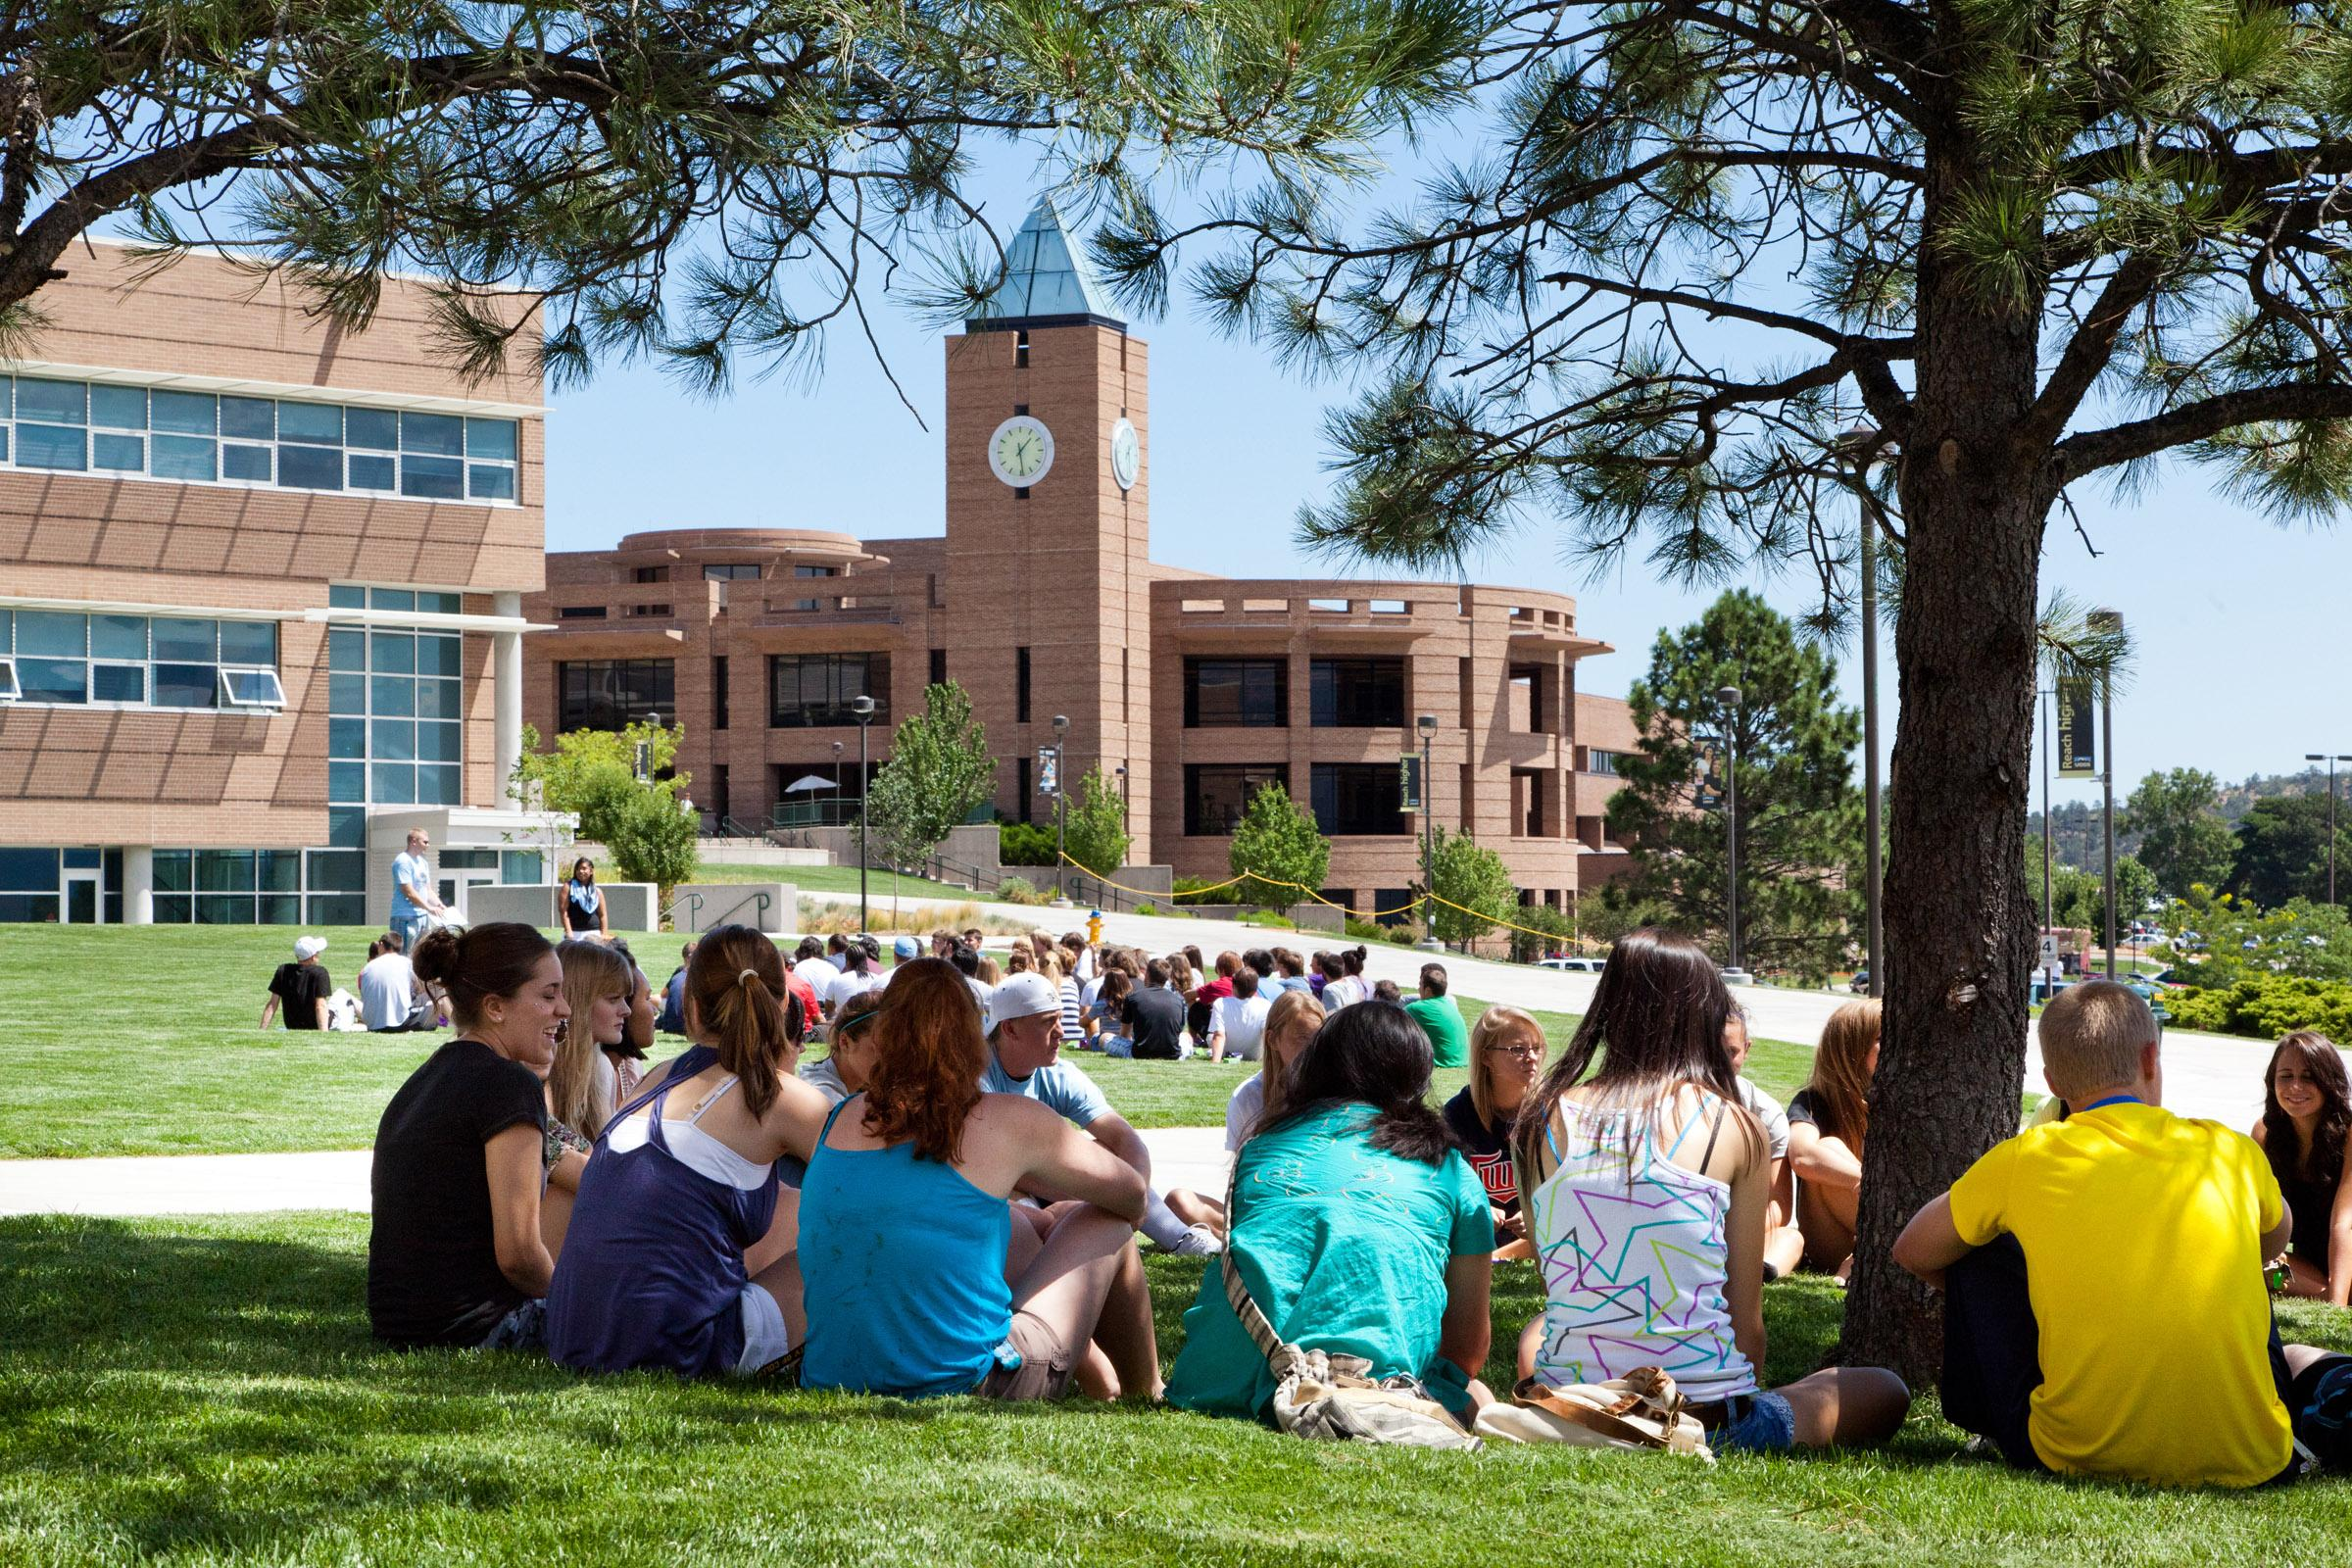 Students sit on the grass with El Pomar Center bell tower behind them